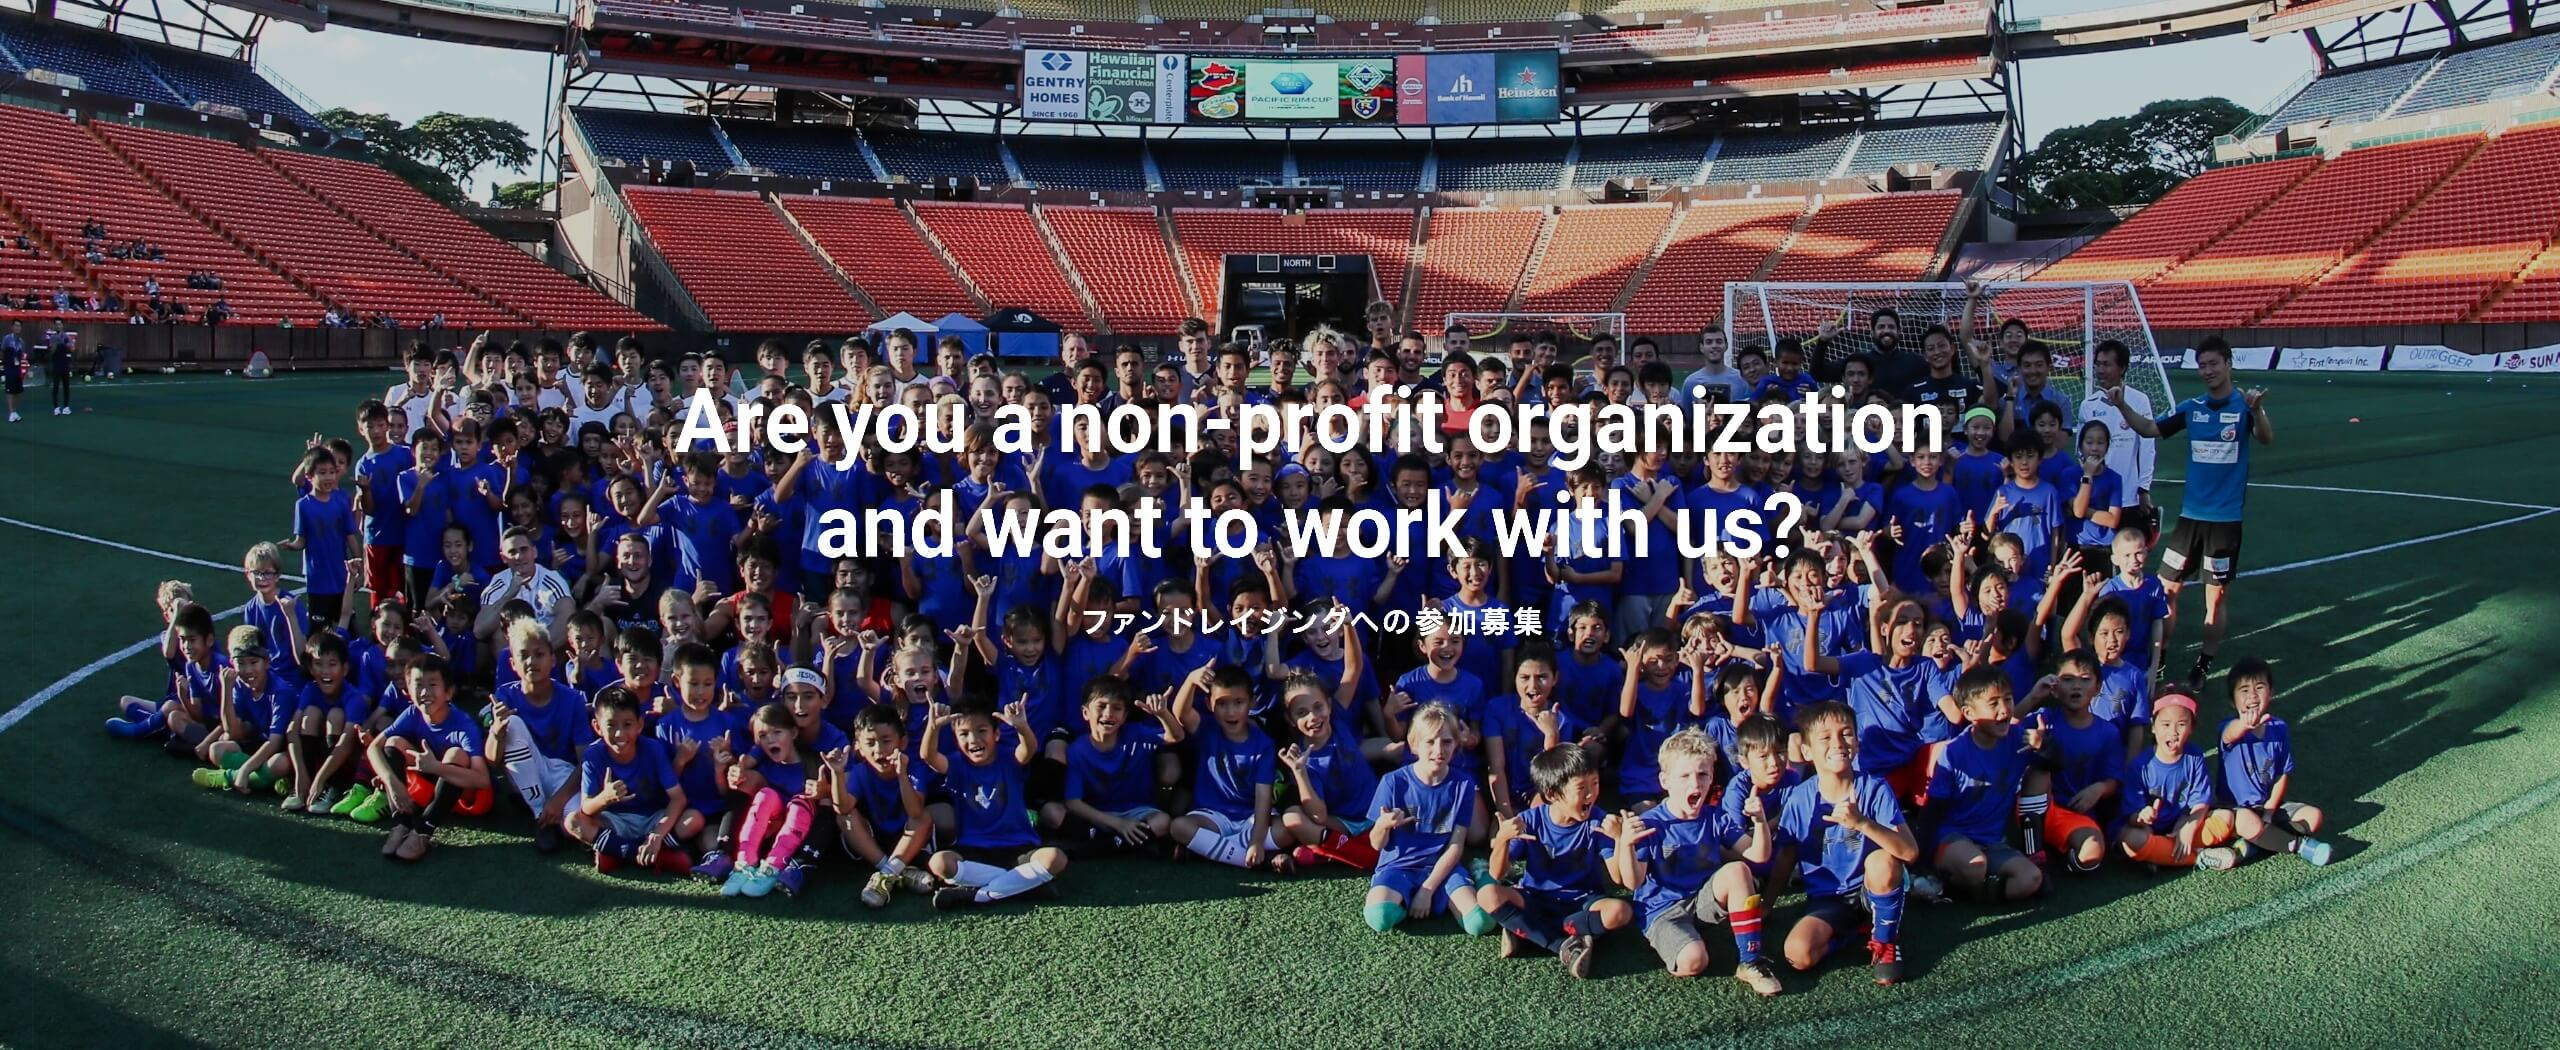 Are you a non-profit organization and want to work with us? ファンドレイジングへの参加募集